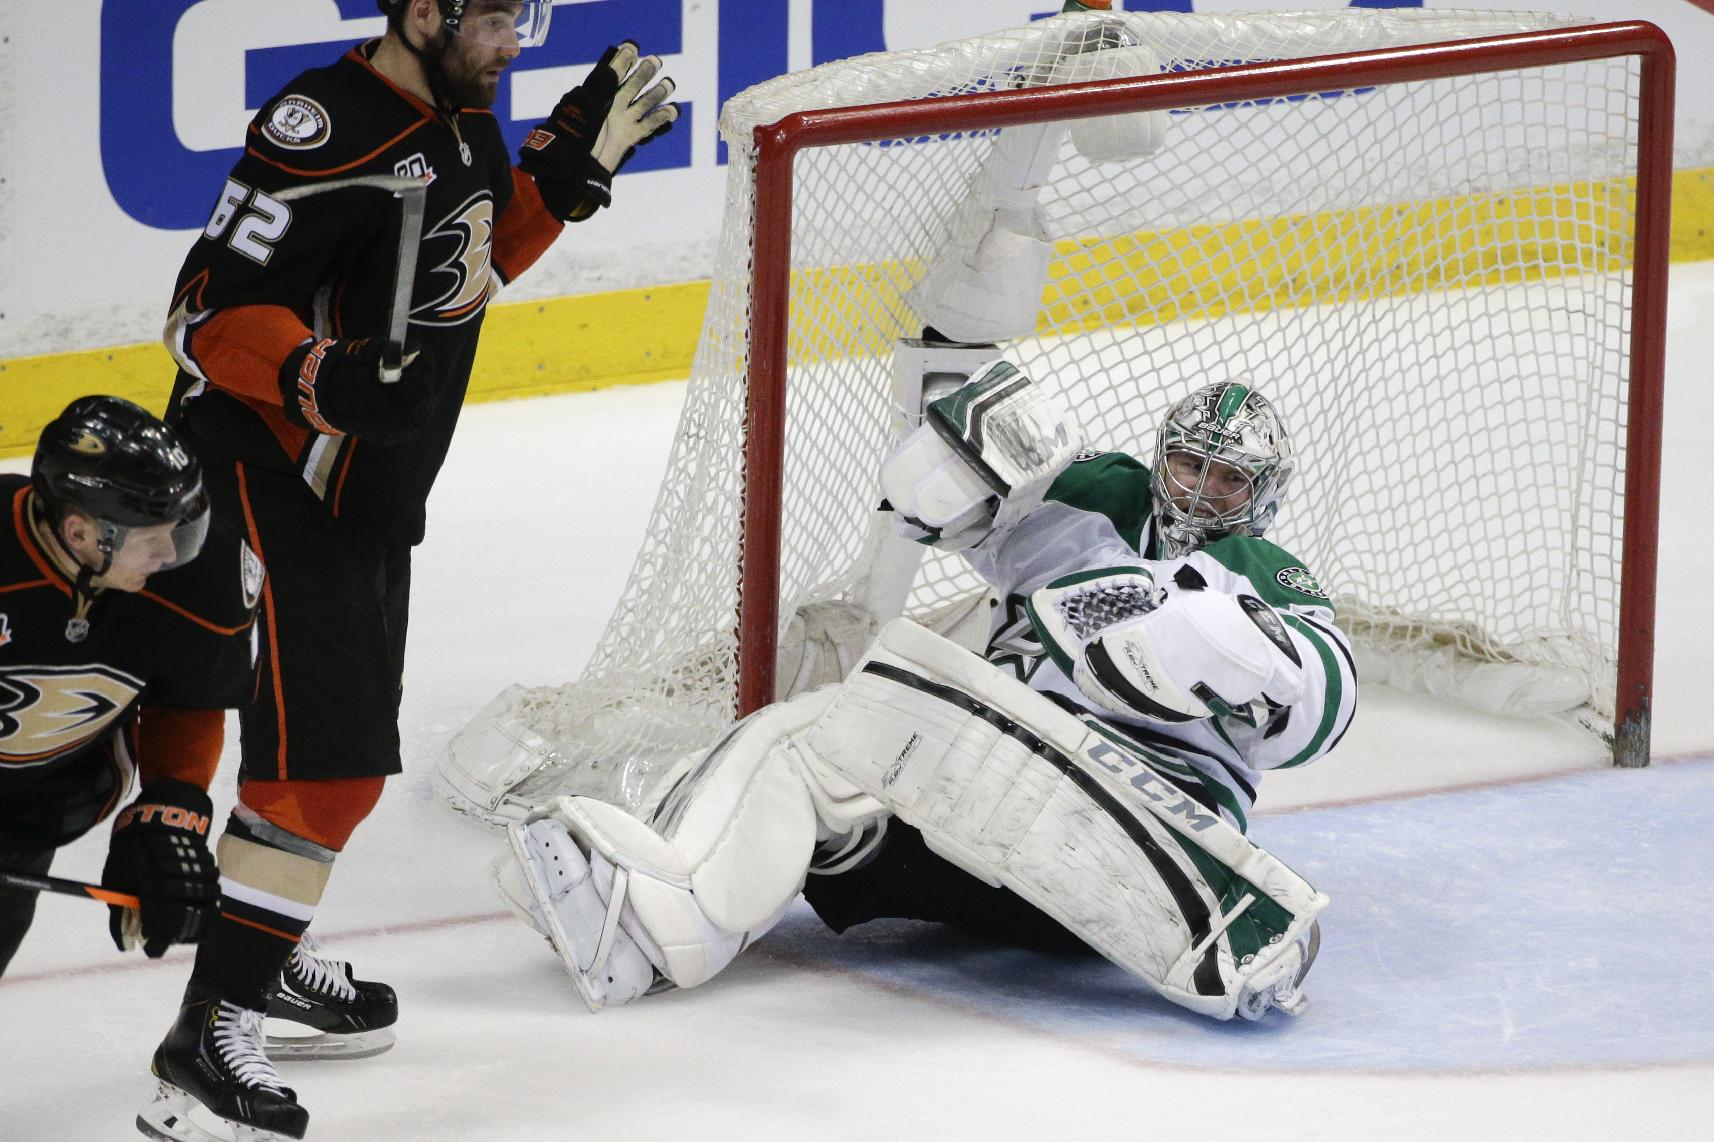 Dallas Stars goalie Kari Lehtonen, center, of Finland, falls to the ice as Anaheim Ducks' Patrick Maroon, left, watches during the second period in Game 1 of the first-round NHL hockey Stanley Cup playoff series on Wednesday, April 16, 2014, in Anaheim, Calif